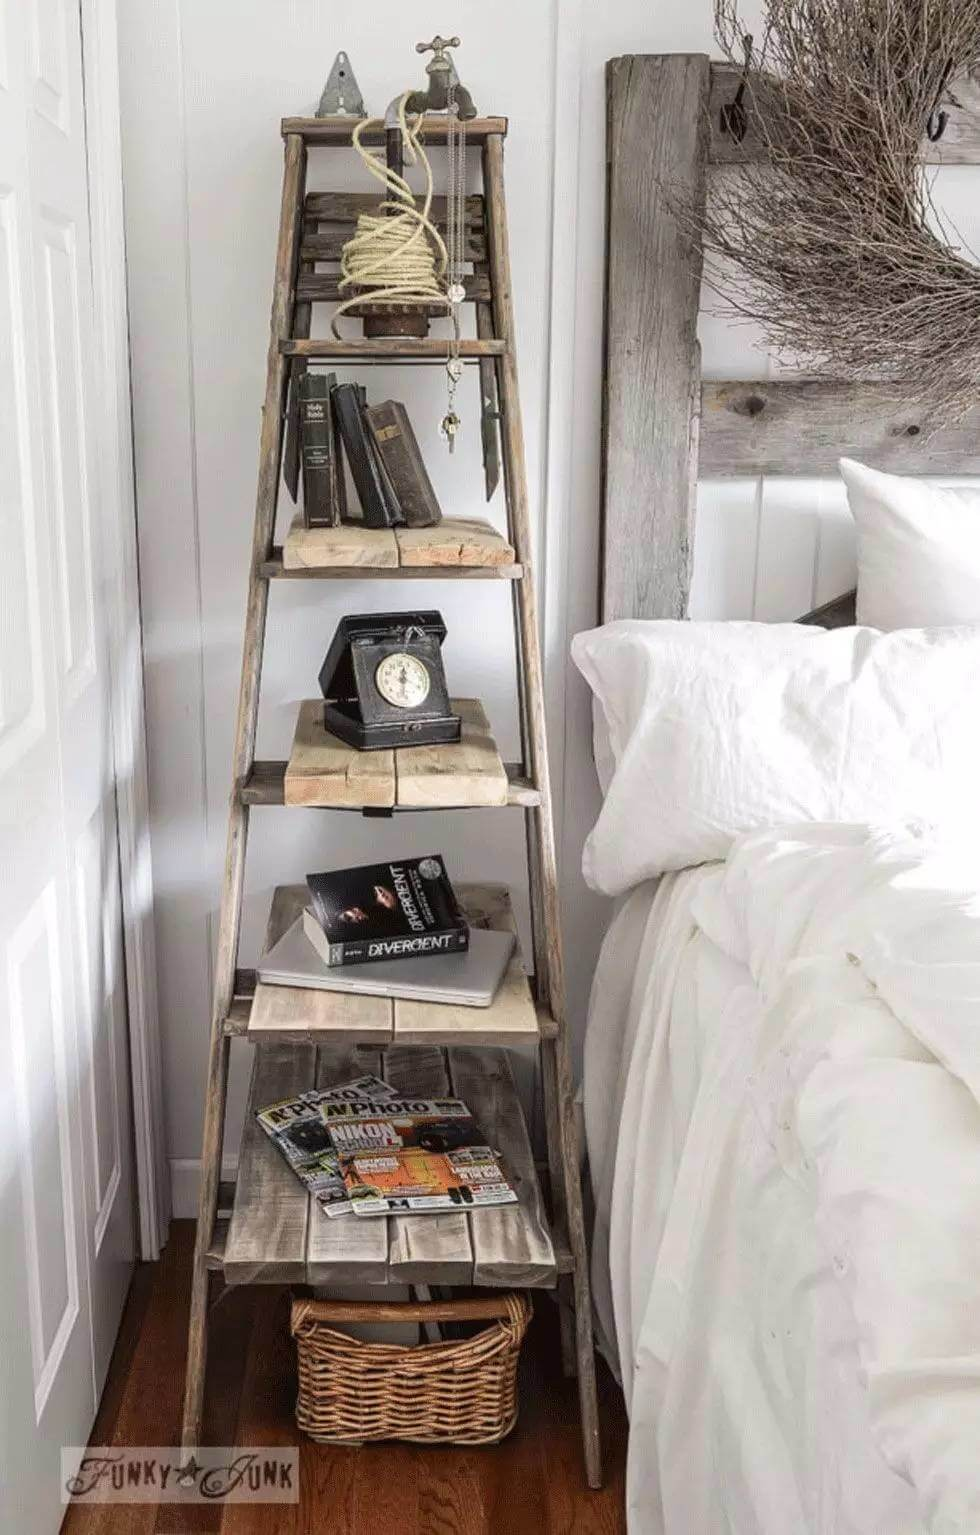 Charmant 17. Upcycled Orchard Ladder Turned Nightstand